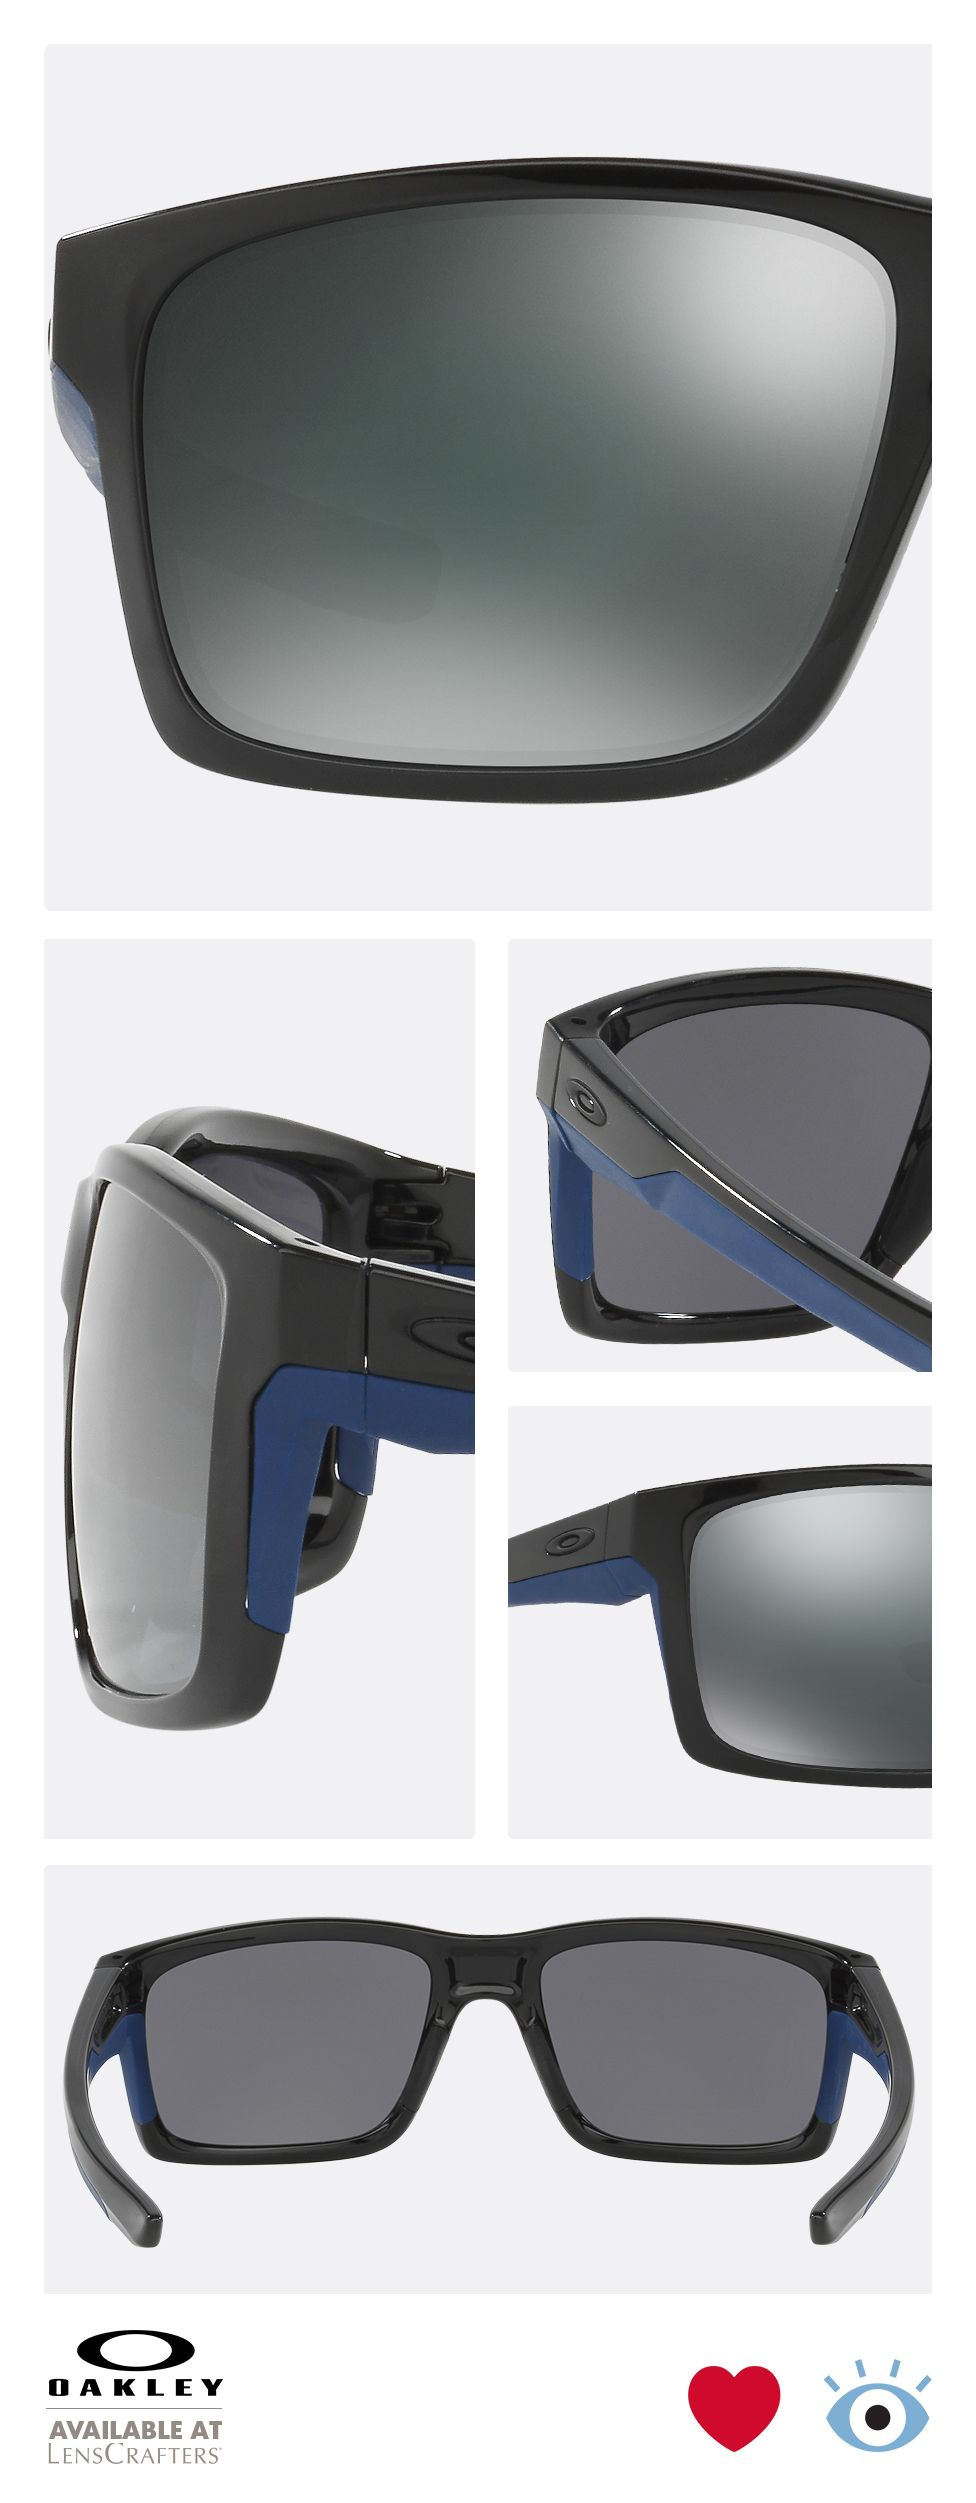 3d06ae81b61 These Oakley Mainlink sunglasses